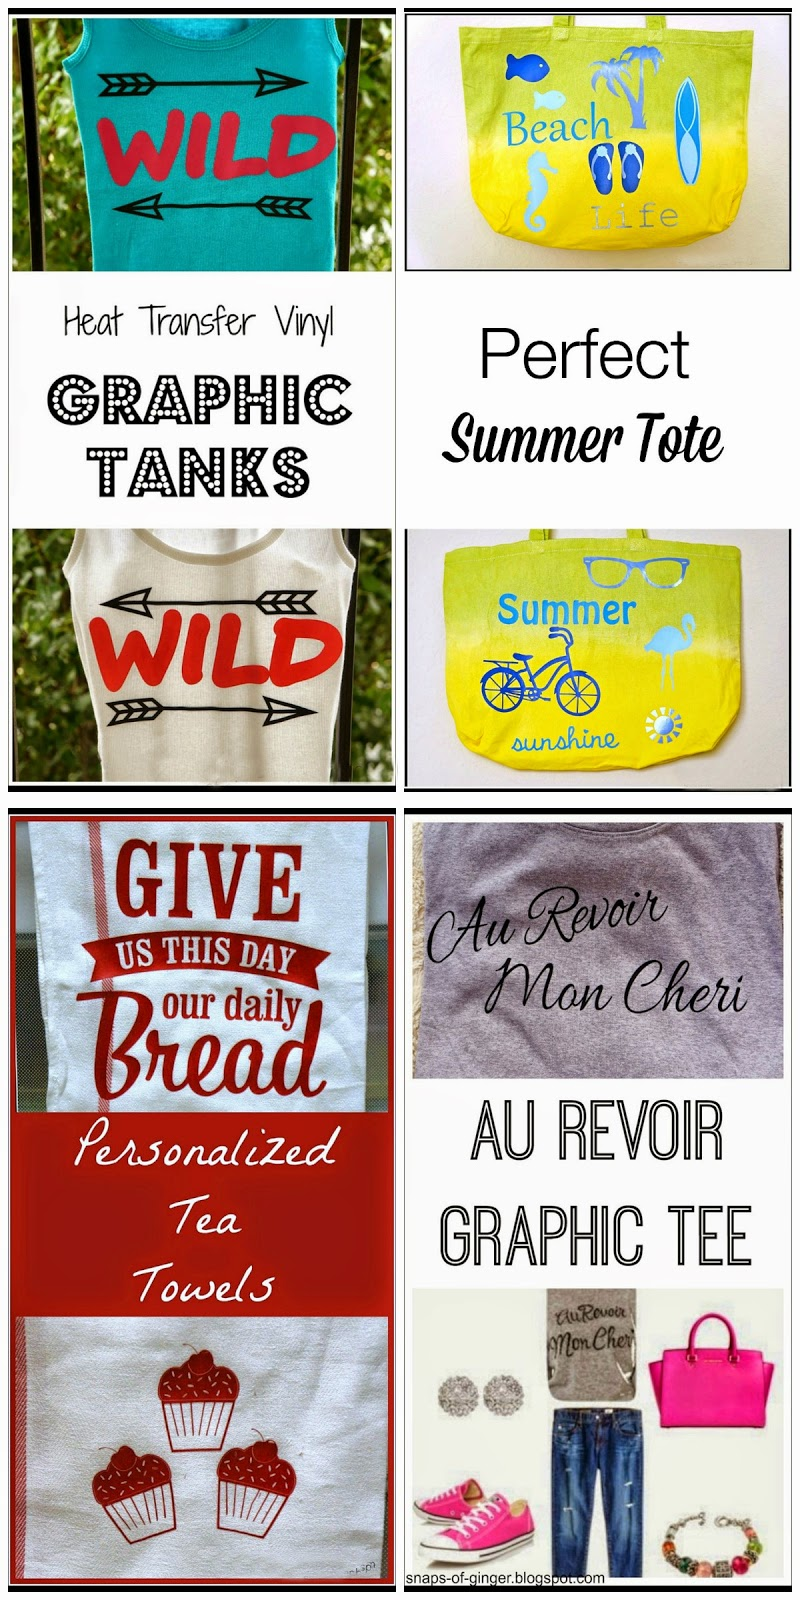 Snaps of Ginger: 4 Easy Heat Transfer Vinyl Projects